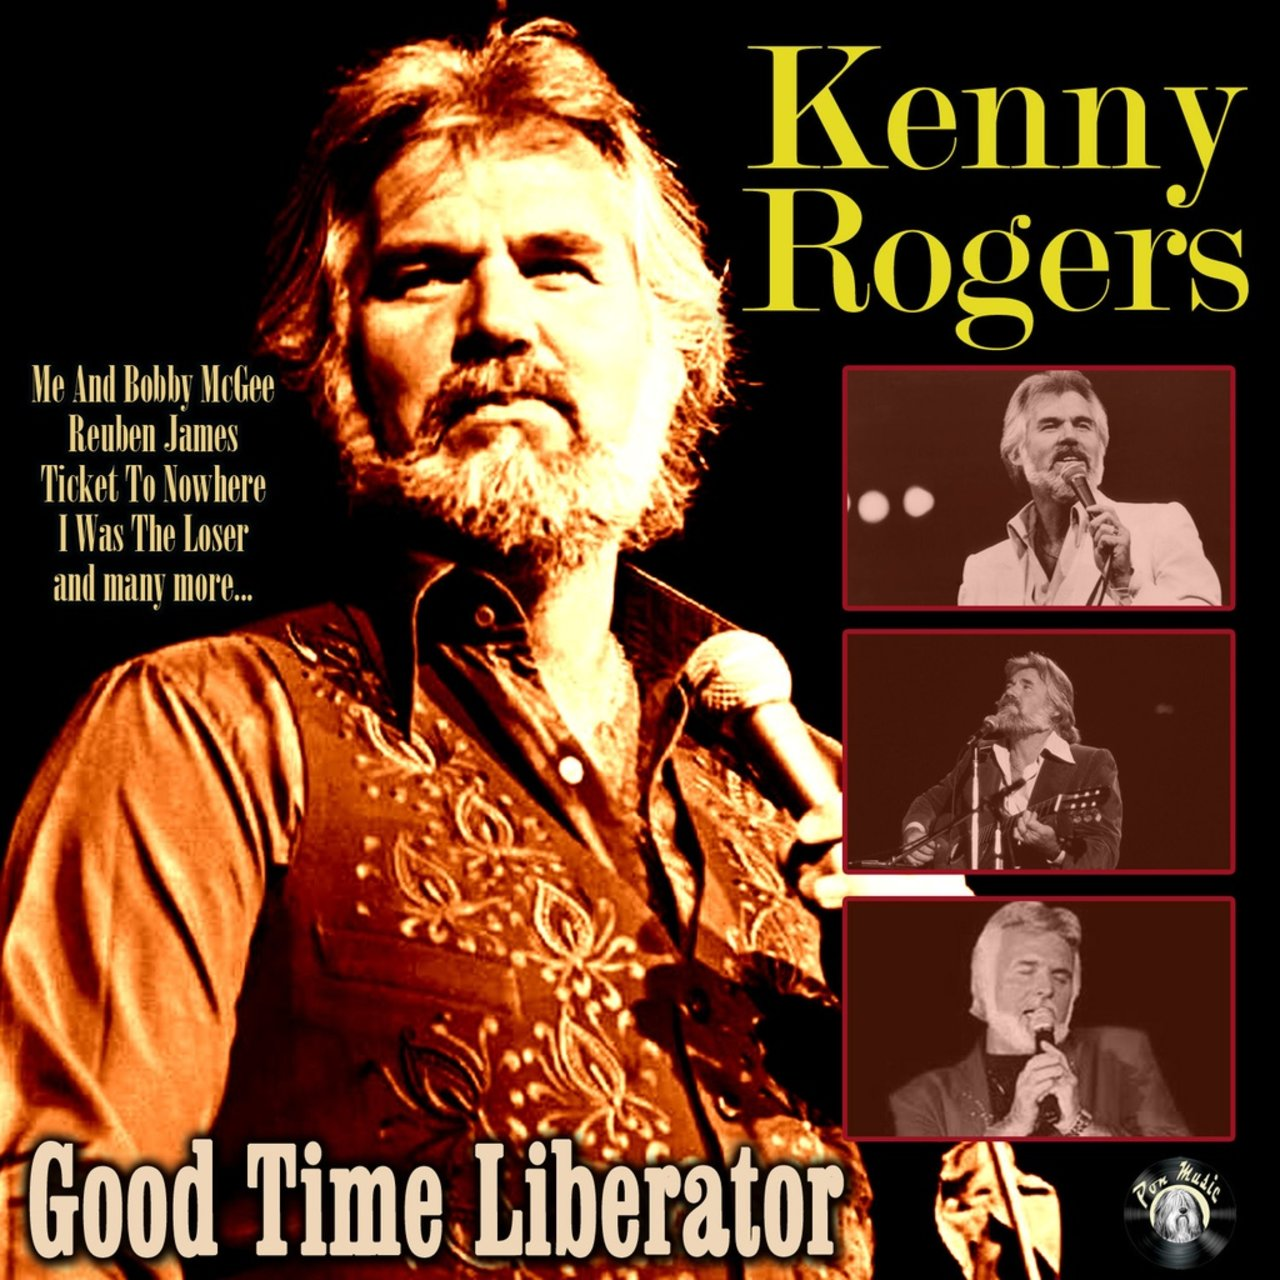 TIDAL: Listen to Kenny Rogers on TIDAL